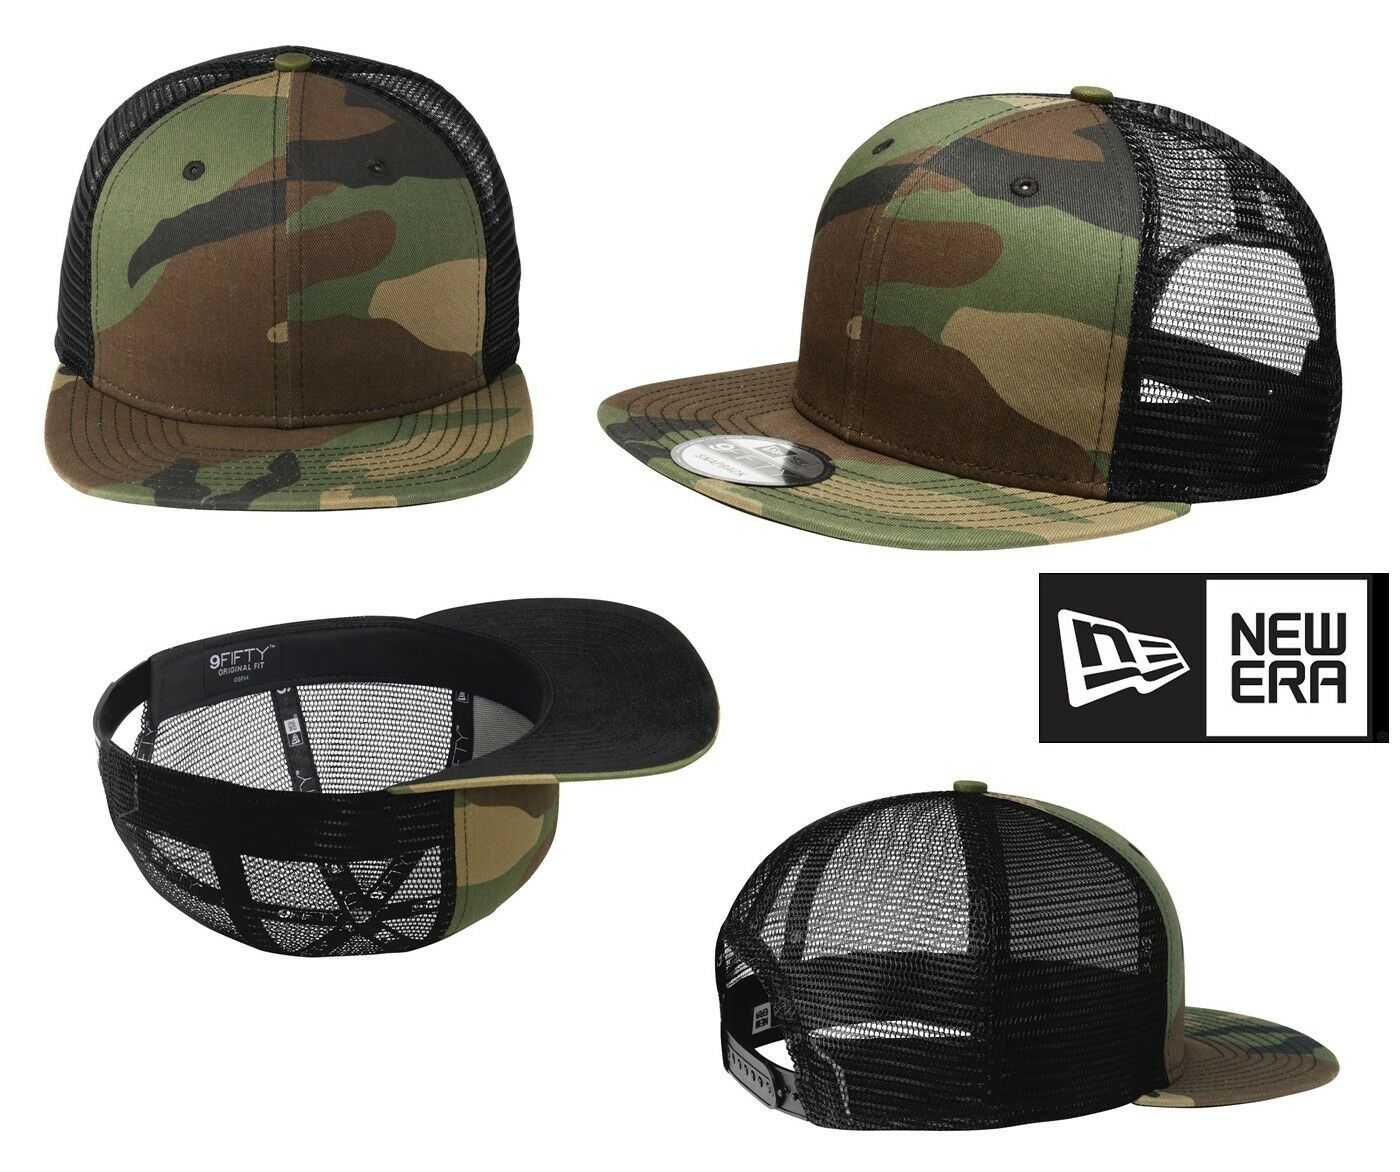 MEN'S NEW ERA CAMOUFLAGE ORIGINAL FIT 9FIFTY TRUCKERS CAP CAMO CAMOUFLAGE ERA HIGH PROFILE 4747dd